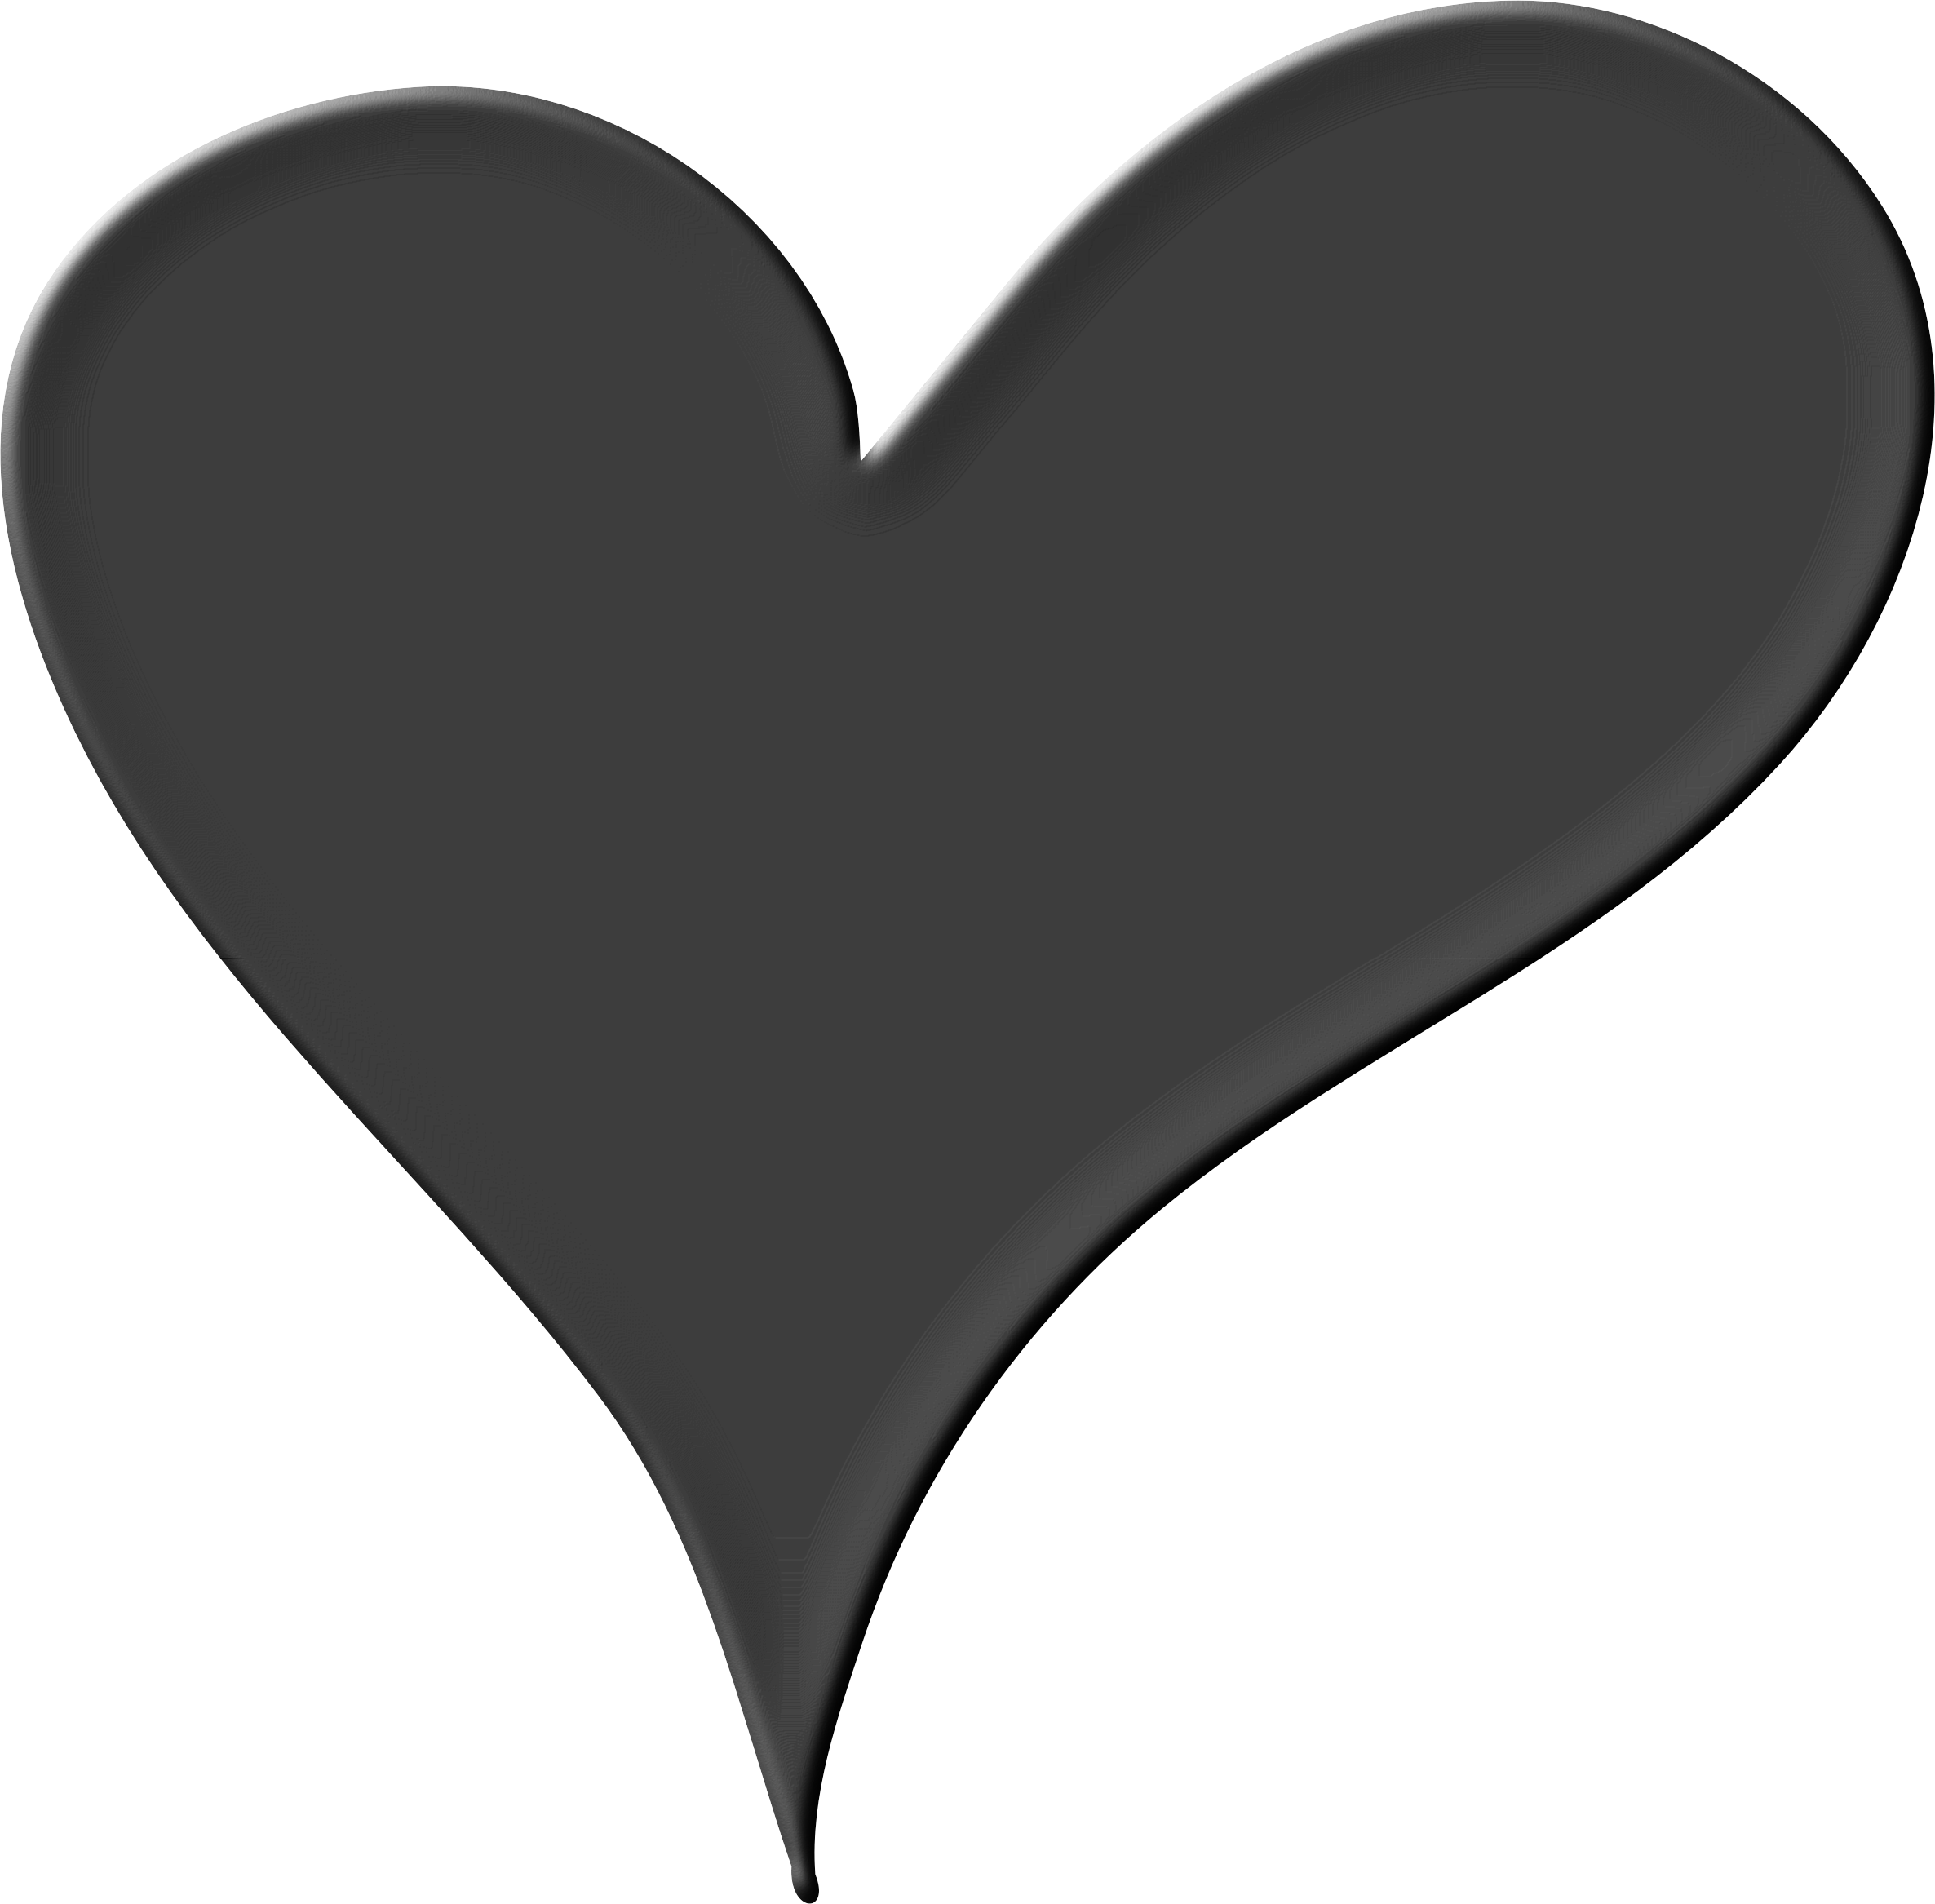 Black heart clipart png clip black and white download 28+ Collection of Black Clipart Heart | High quality, free cliparts ... clip black and white download